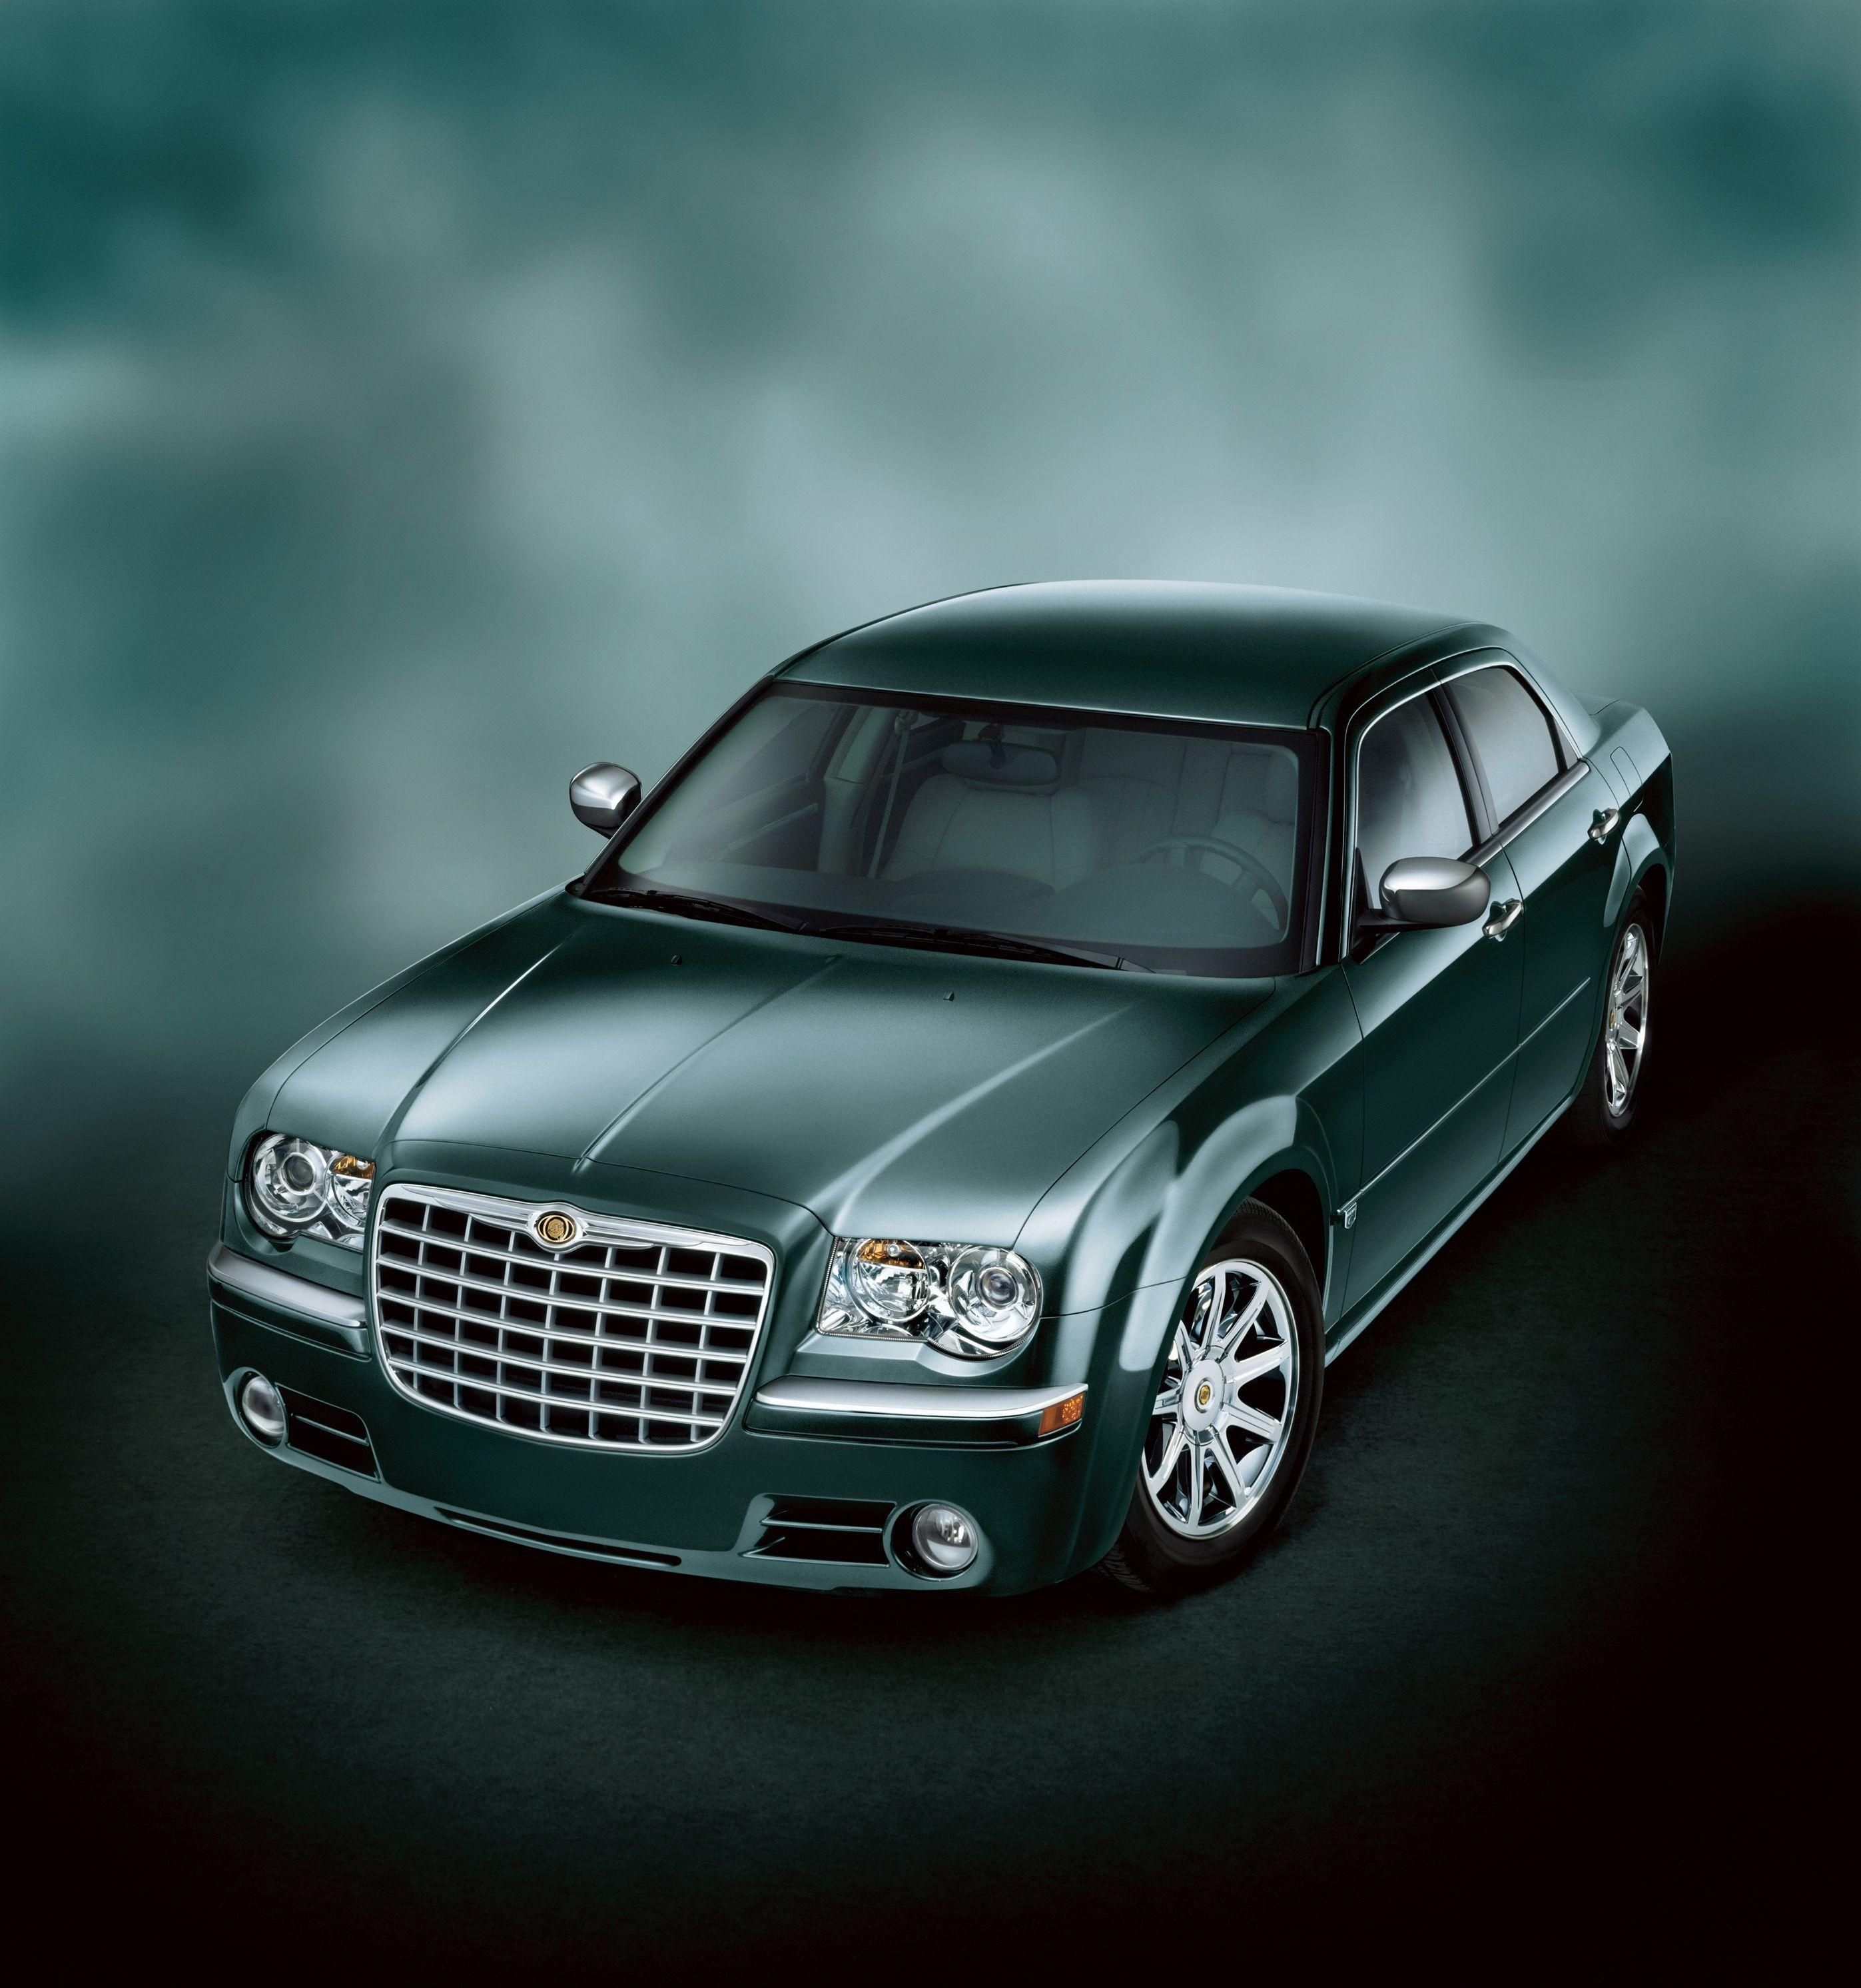 review chrysler cars top speed